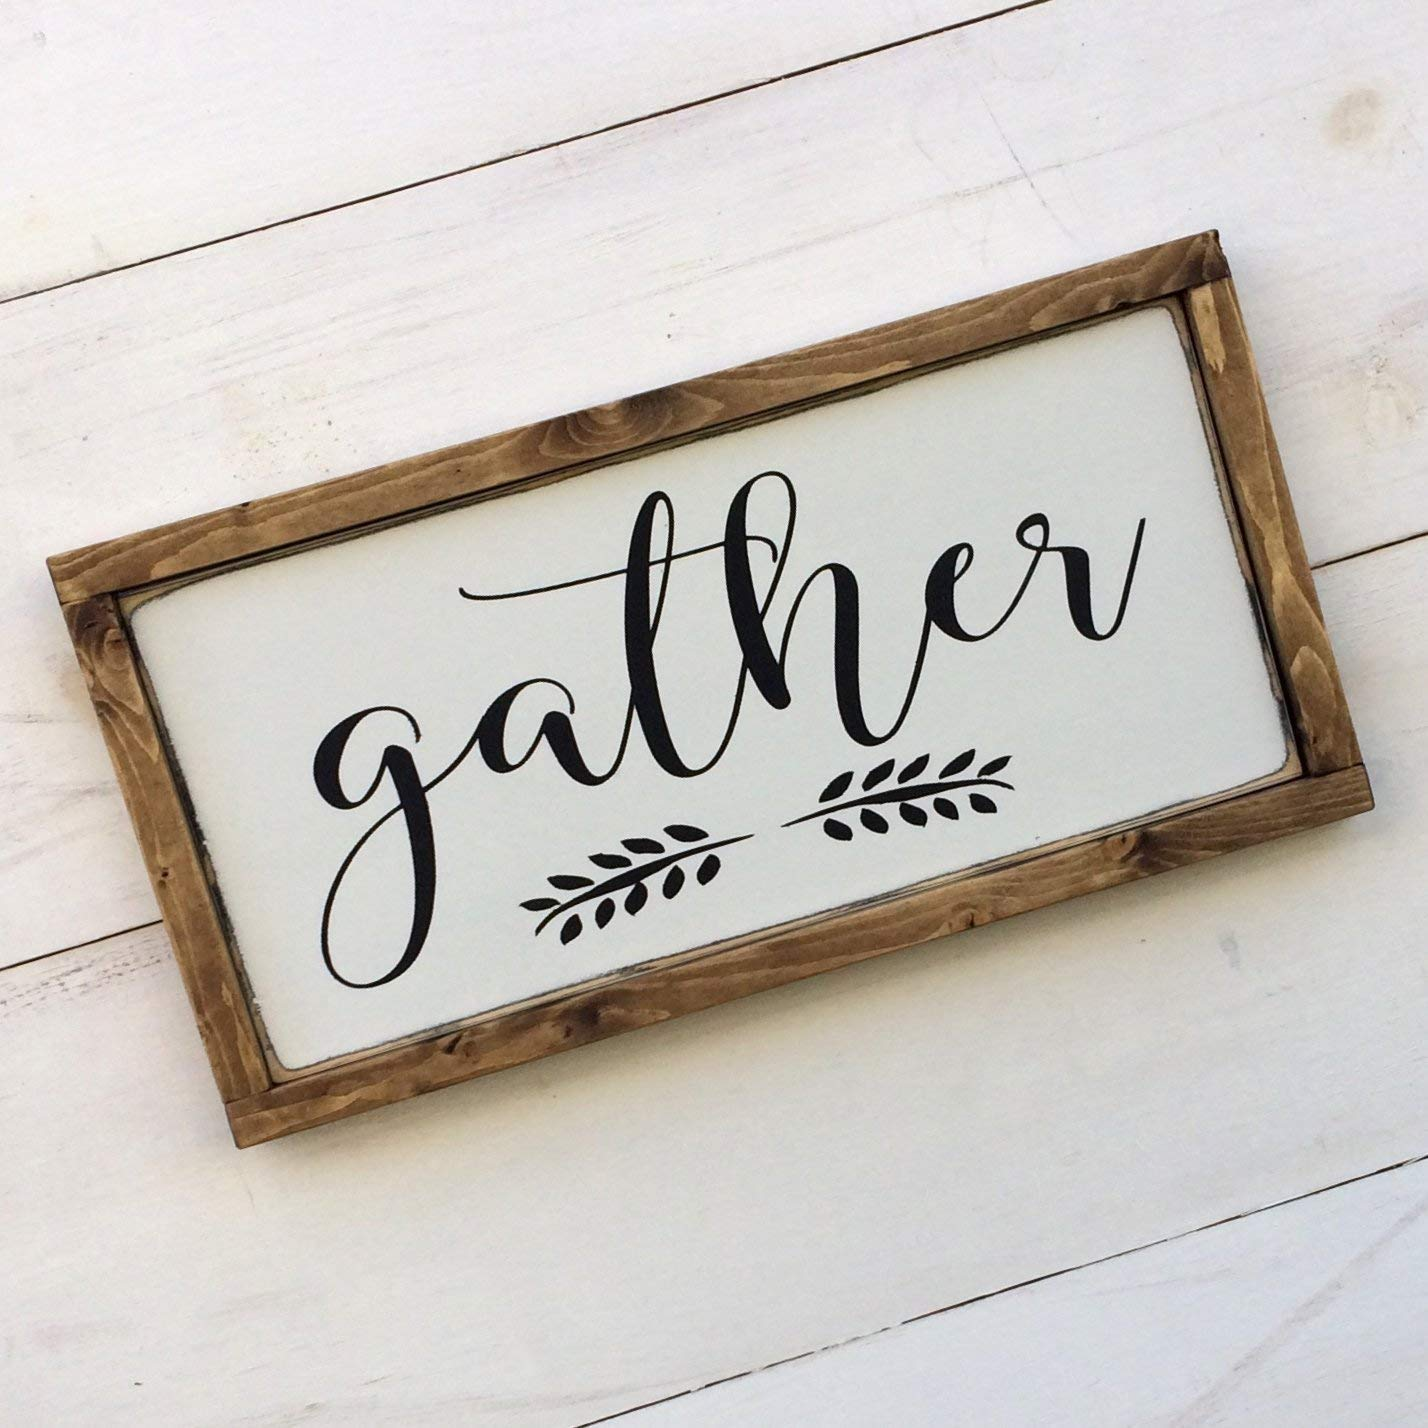 3 Sizes Handmade Wooden Gather Sign Black and White Solid Wood Frame